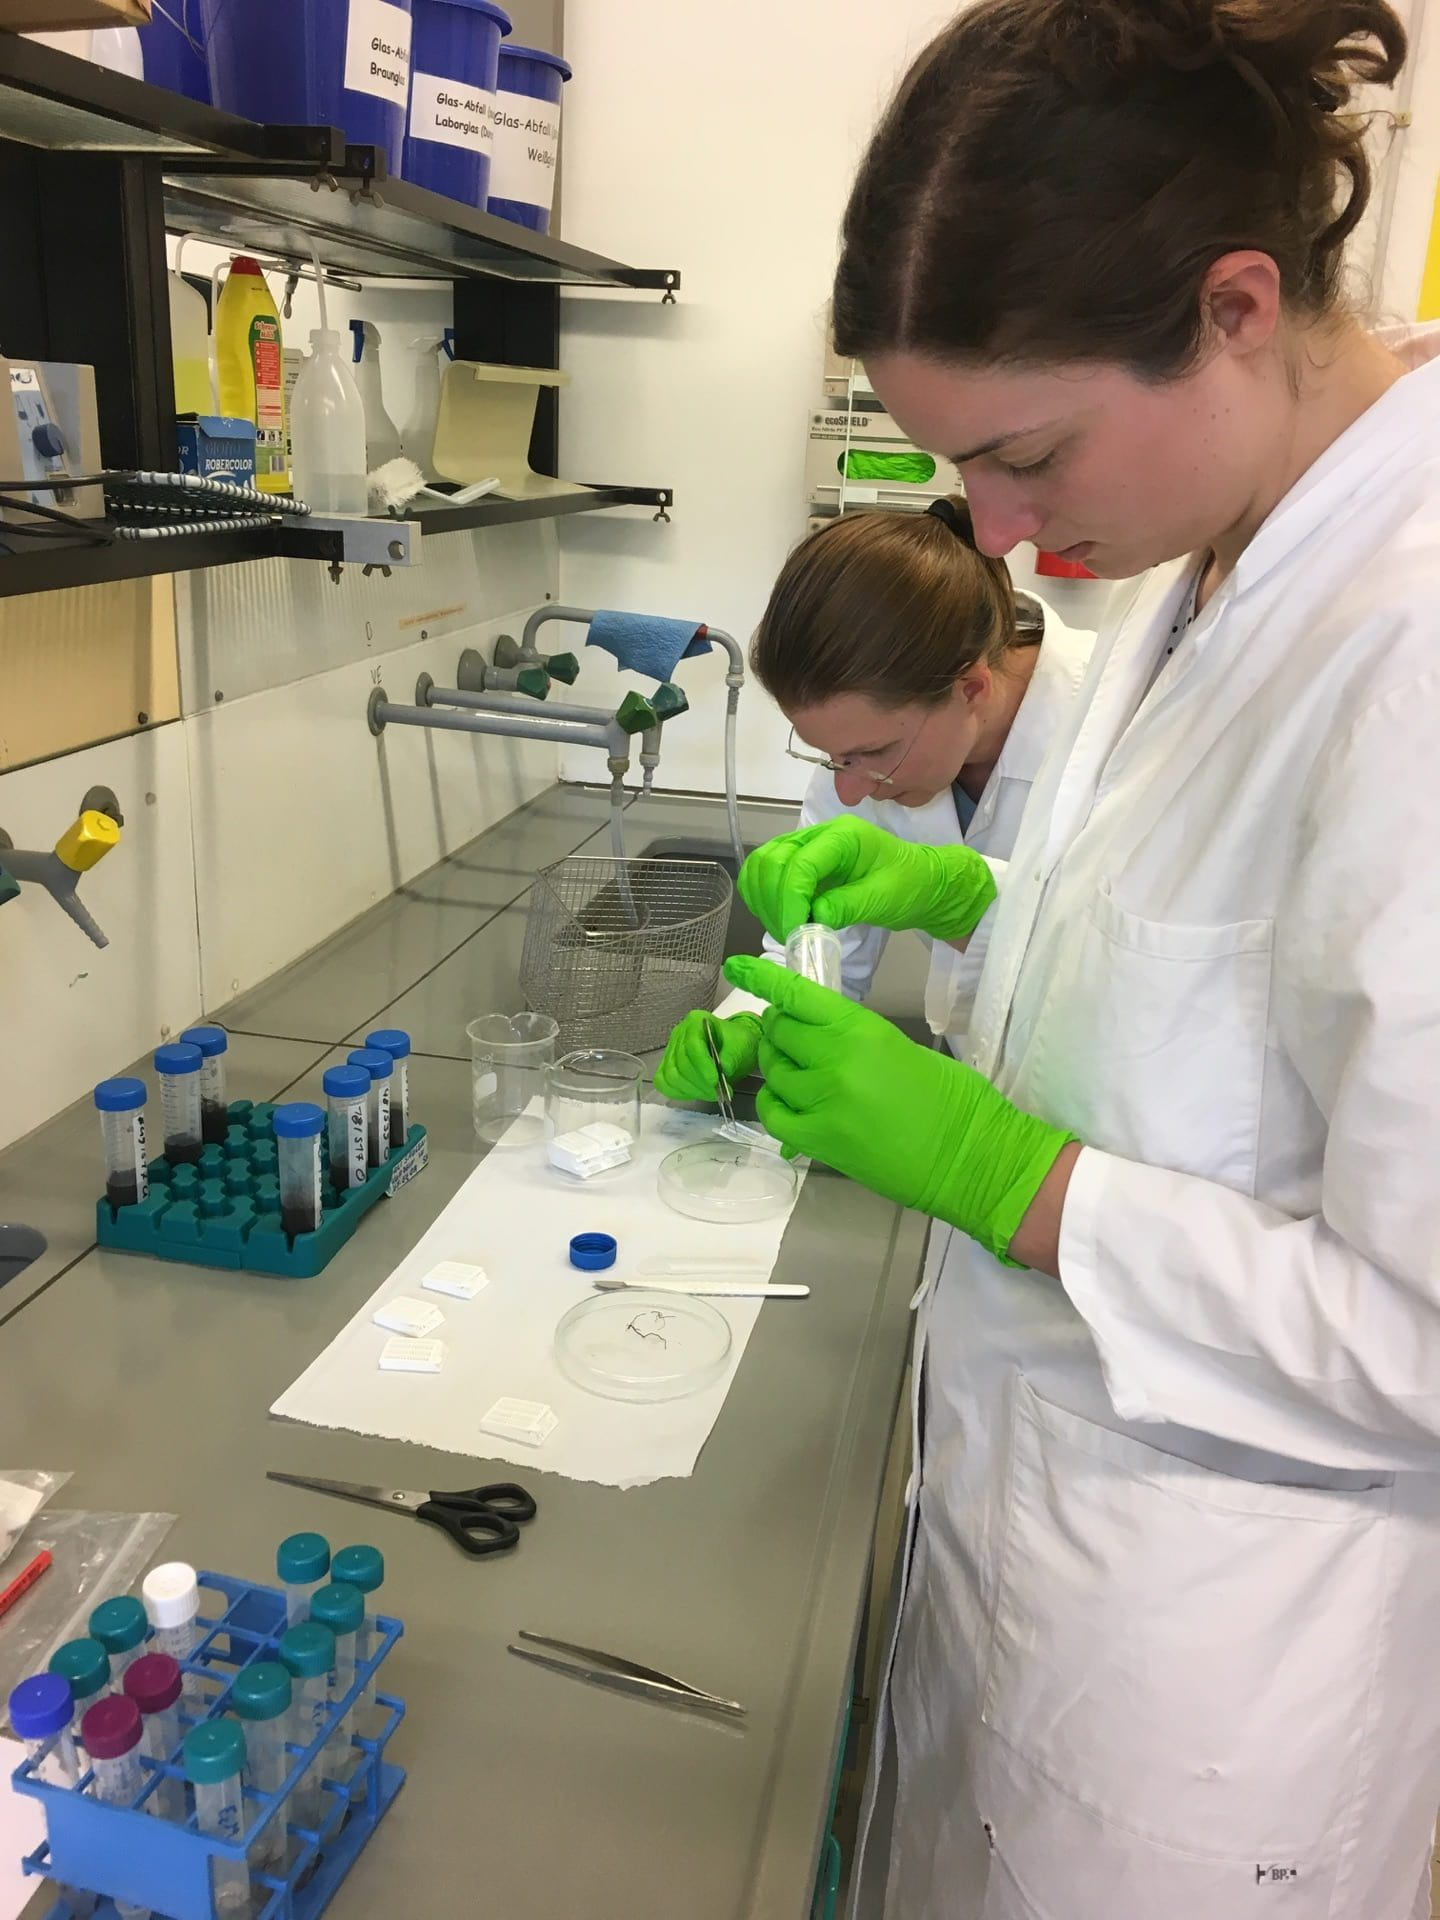 Two scientists working at the lab bench, preparing fungal tissues for staining.